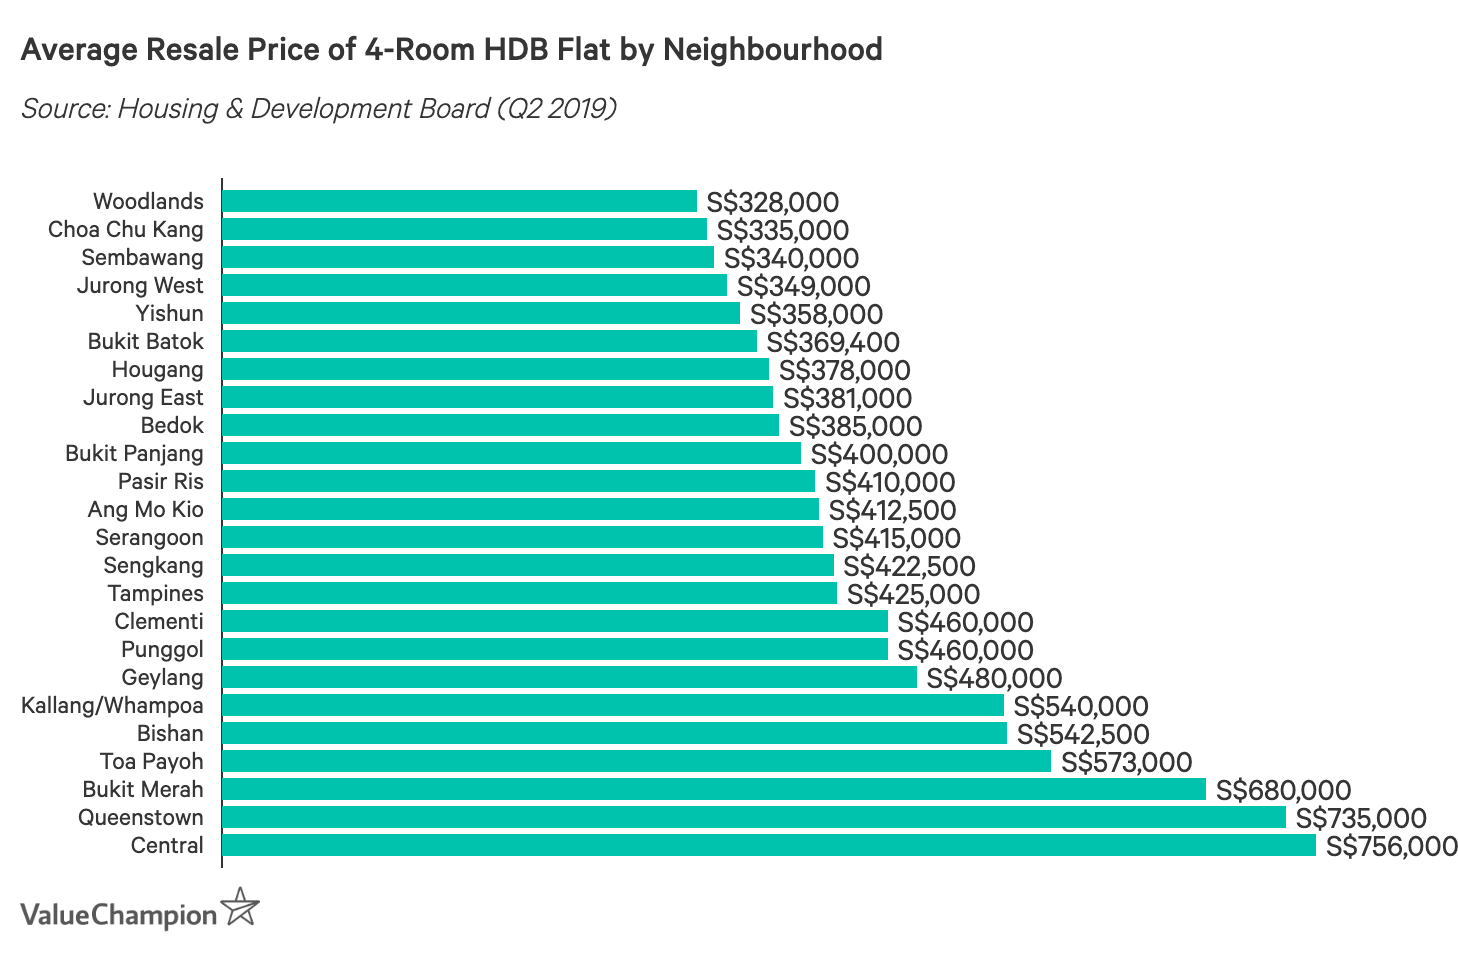 Average Resale Price of 4-Room HDB Flat by Neighbourhood